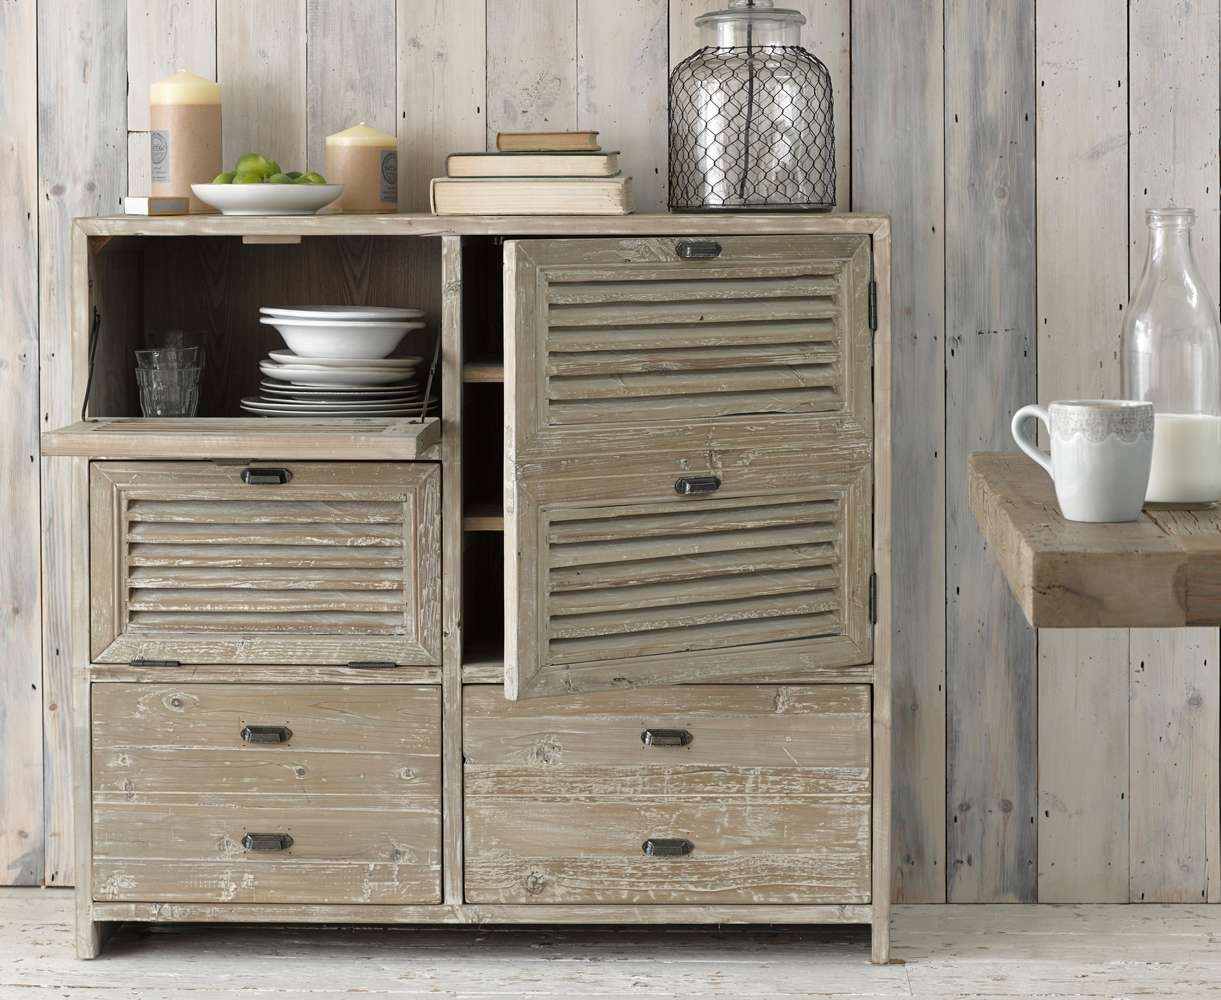 French Style Sideboard | Sucre | Loaf Pertaining To Sideboards With Drawers (View 8 of 20)